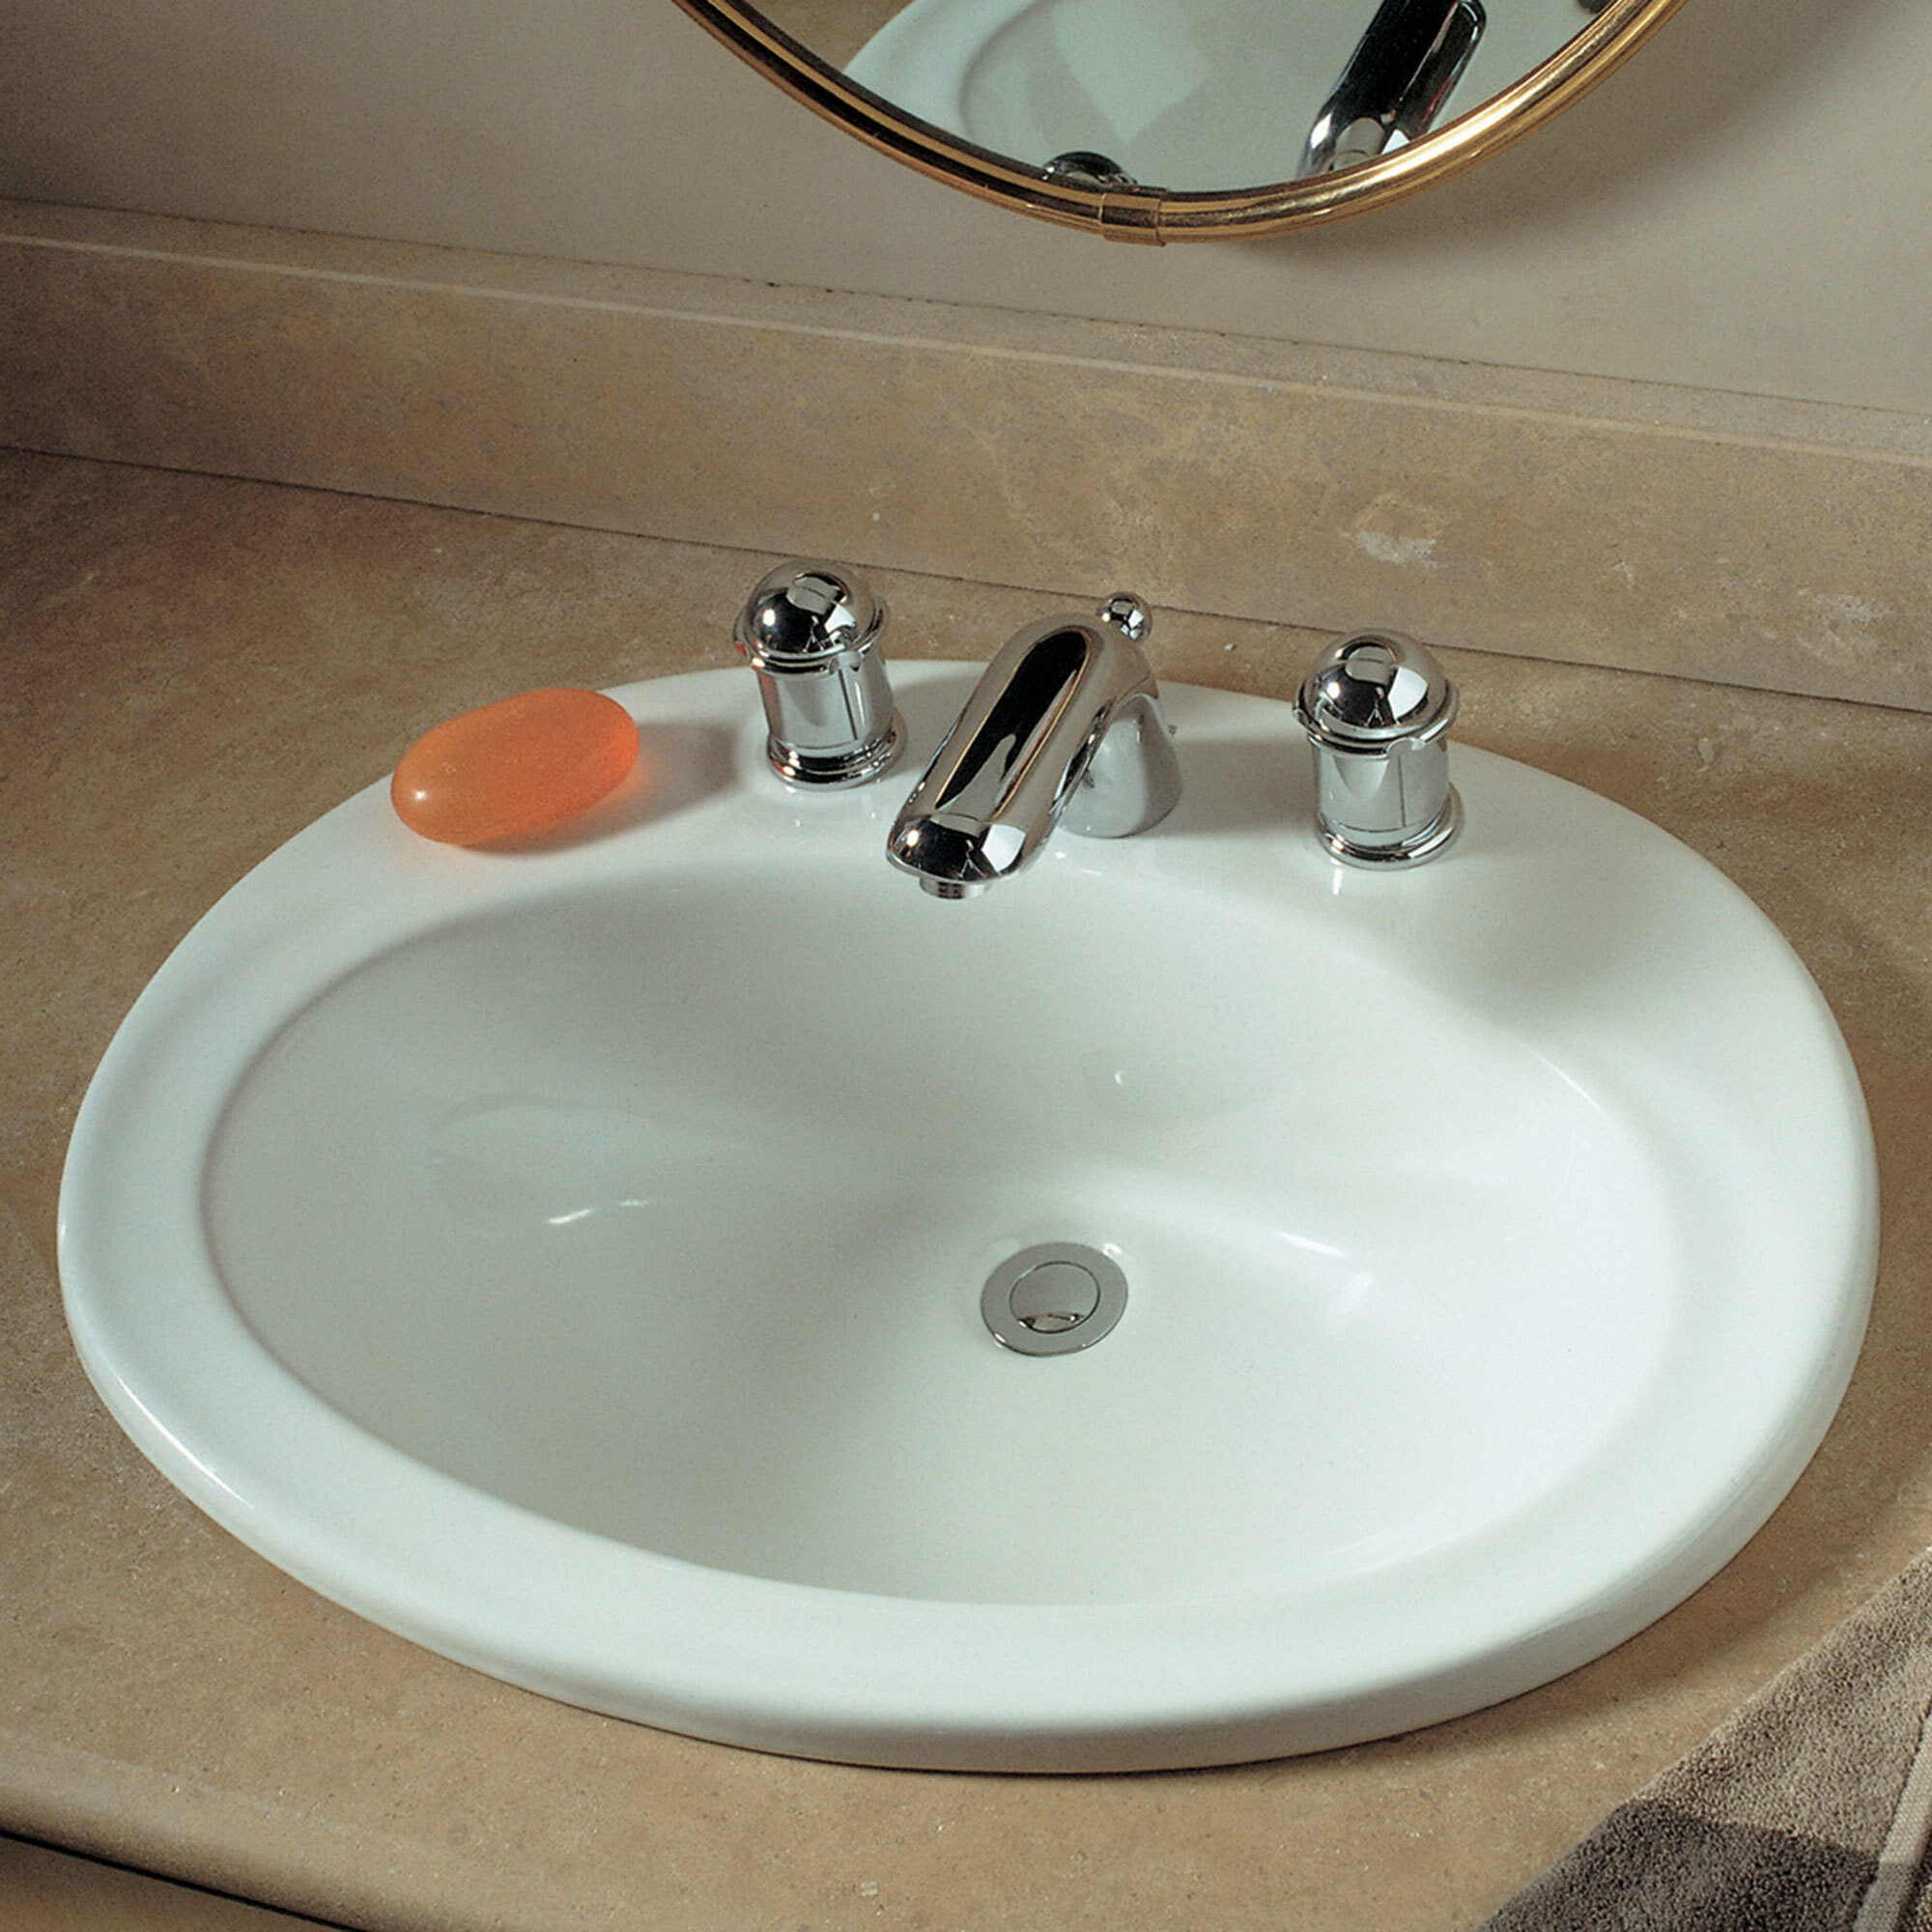 American Standard Piazza Ceramic Oval Drop In Bathroom Sink With